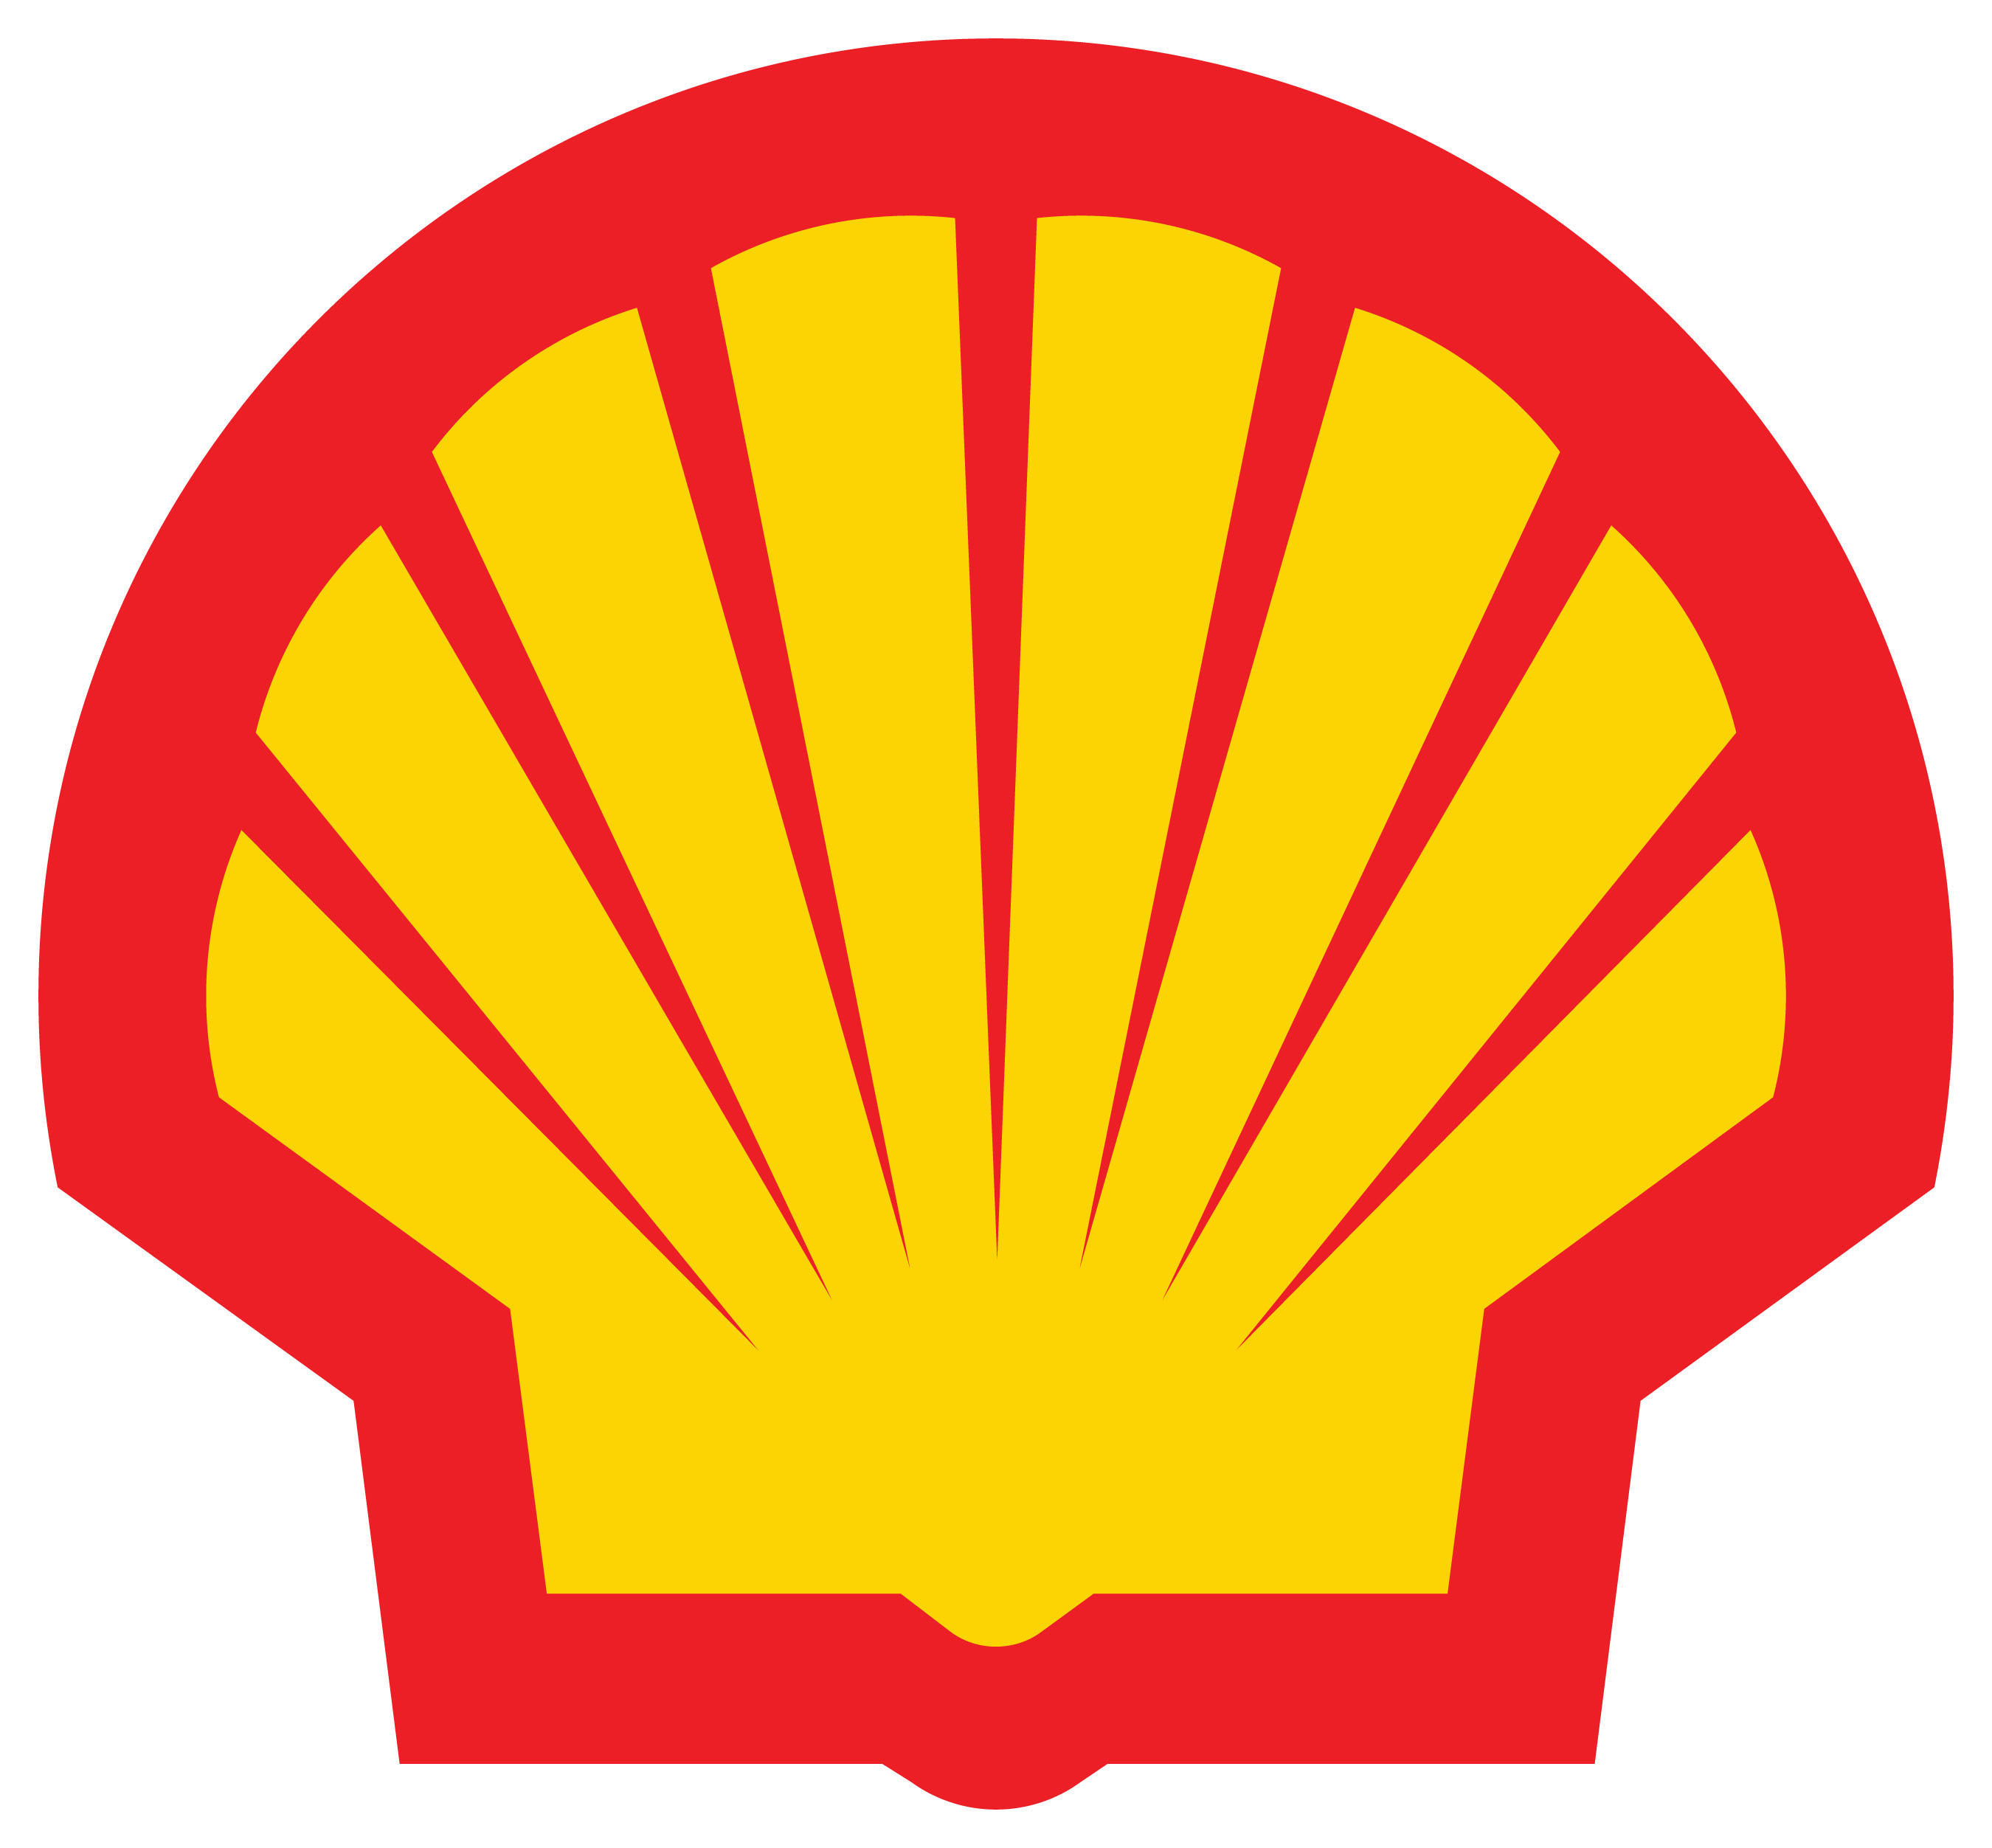 new shell v power nitro premium gasoline consumers benefit from 100 year fuels heritage. Black Bedroom Furniture Sets. Home Design Ideas